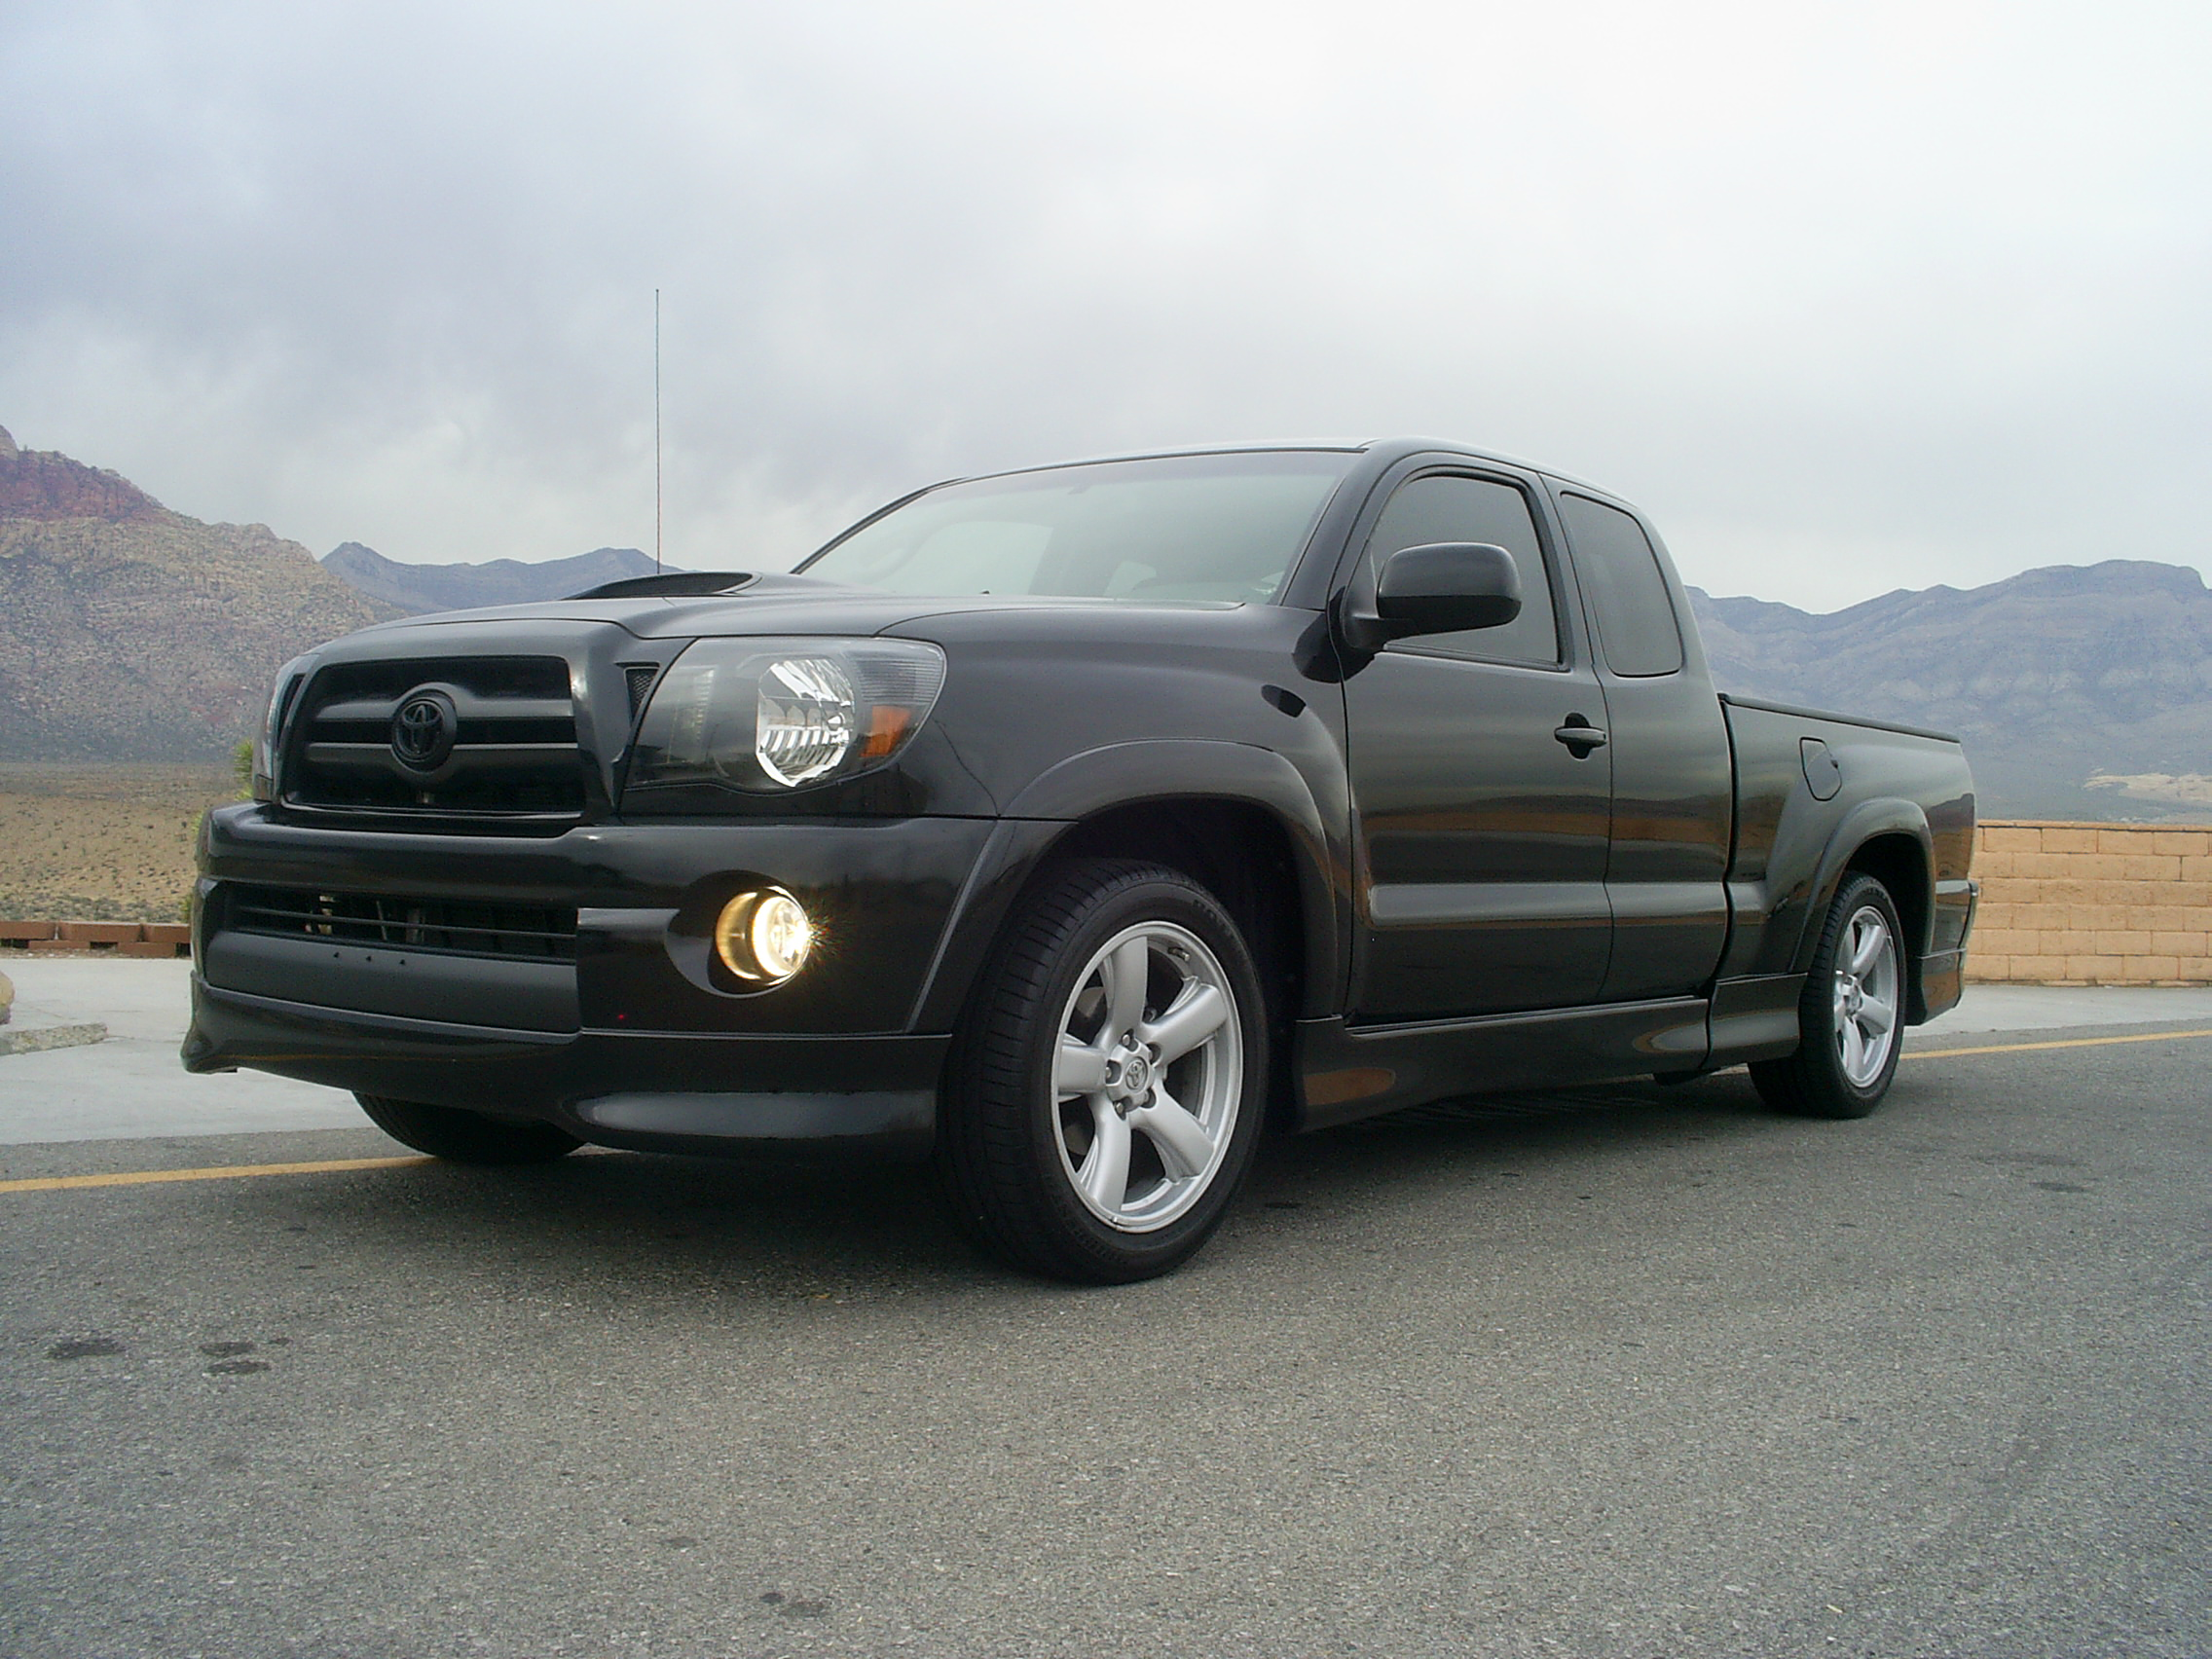 2007  Toyota Tacoma X-Runner picture, mods, upgrades